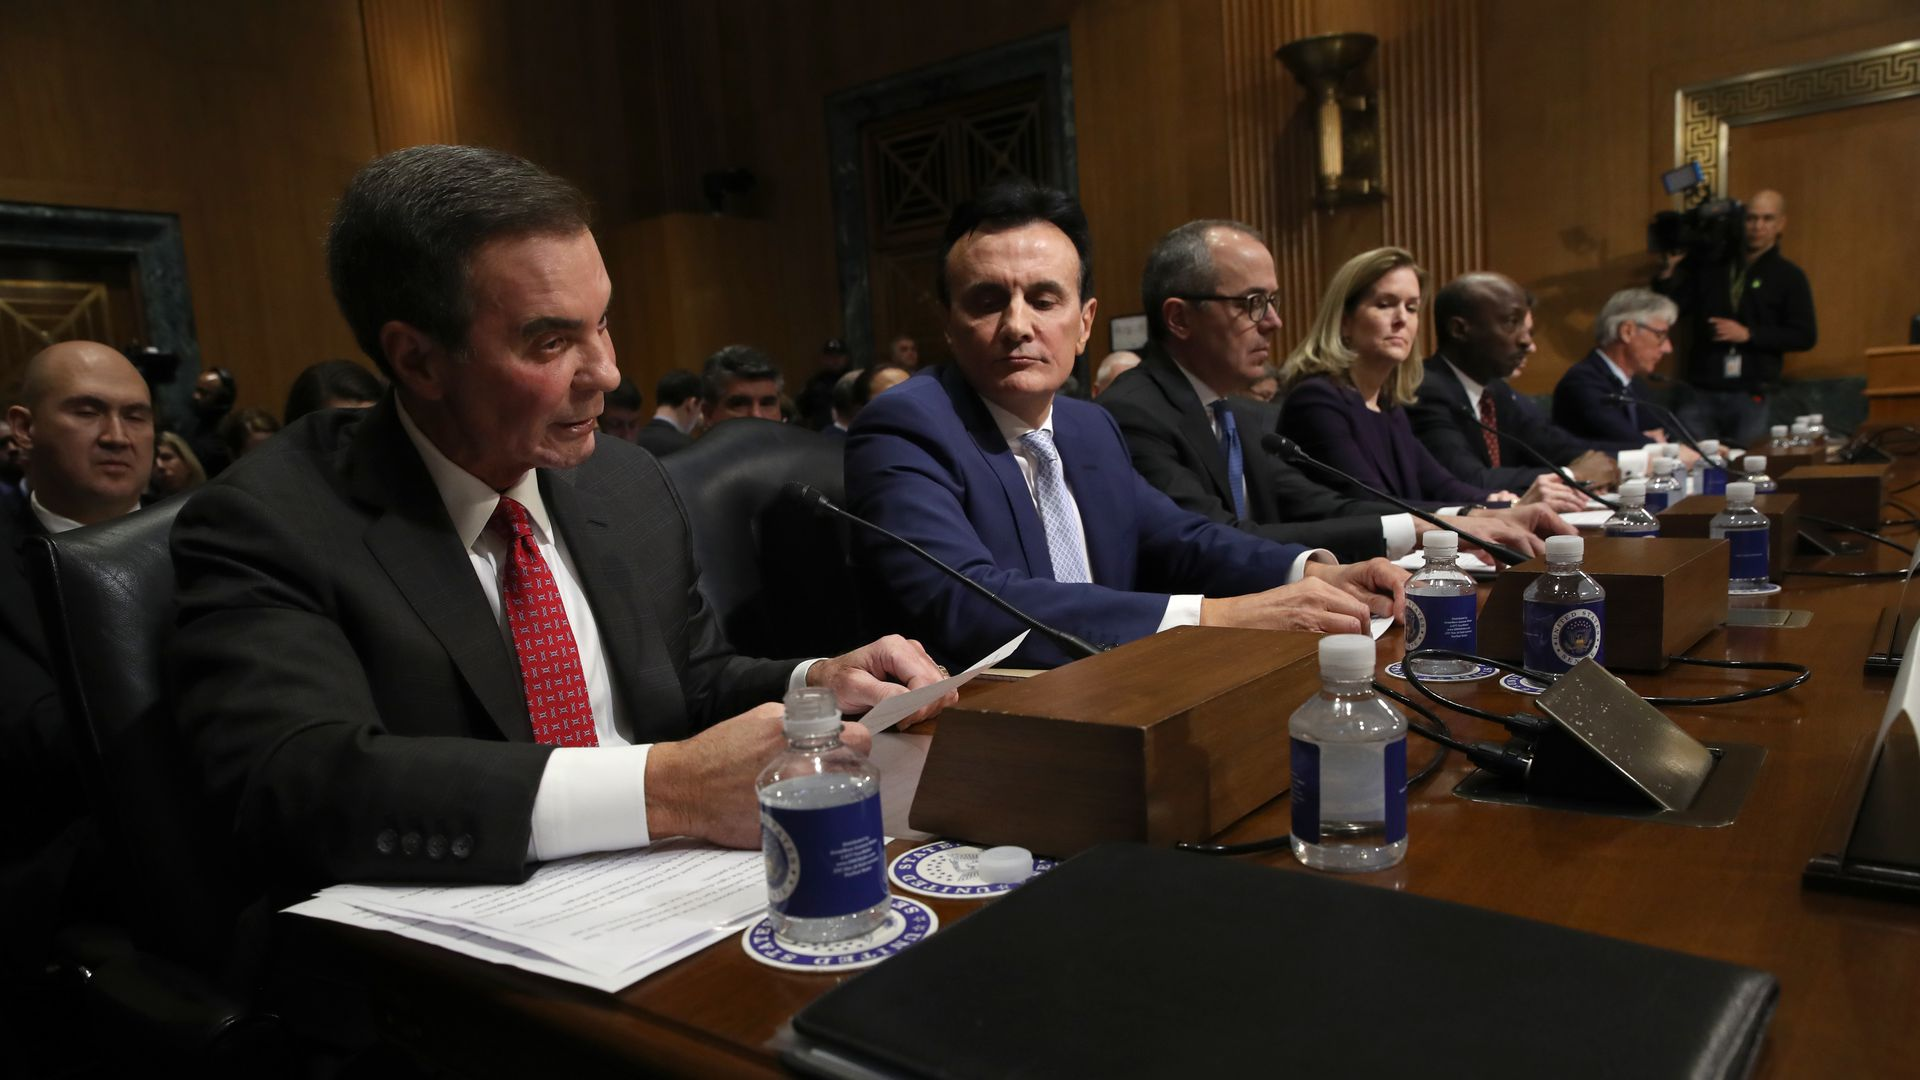 7 top pharmaceutical CEOs testify in front of the Senate Finance Committee